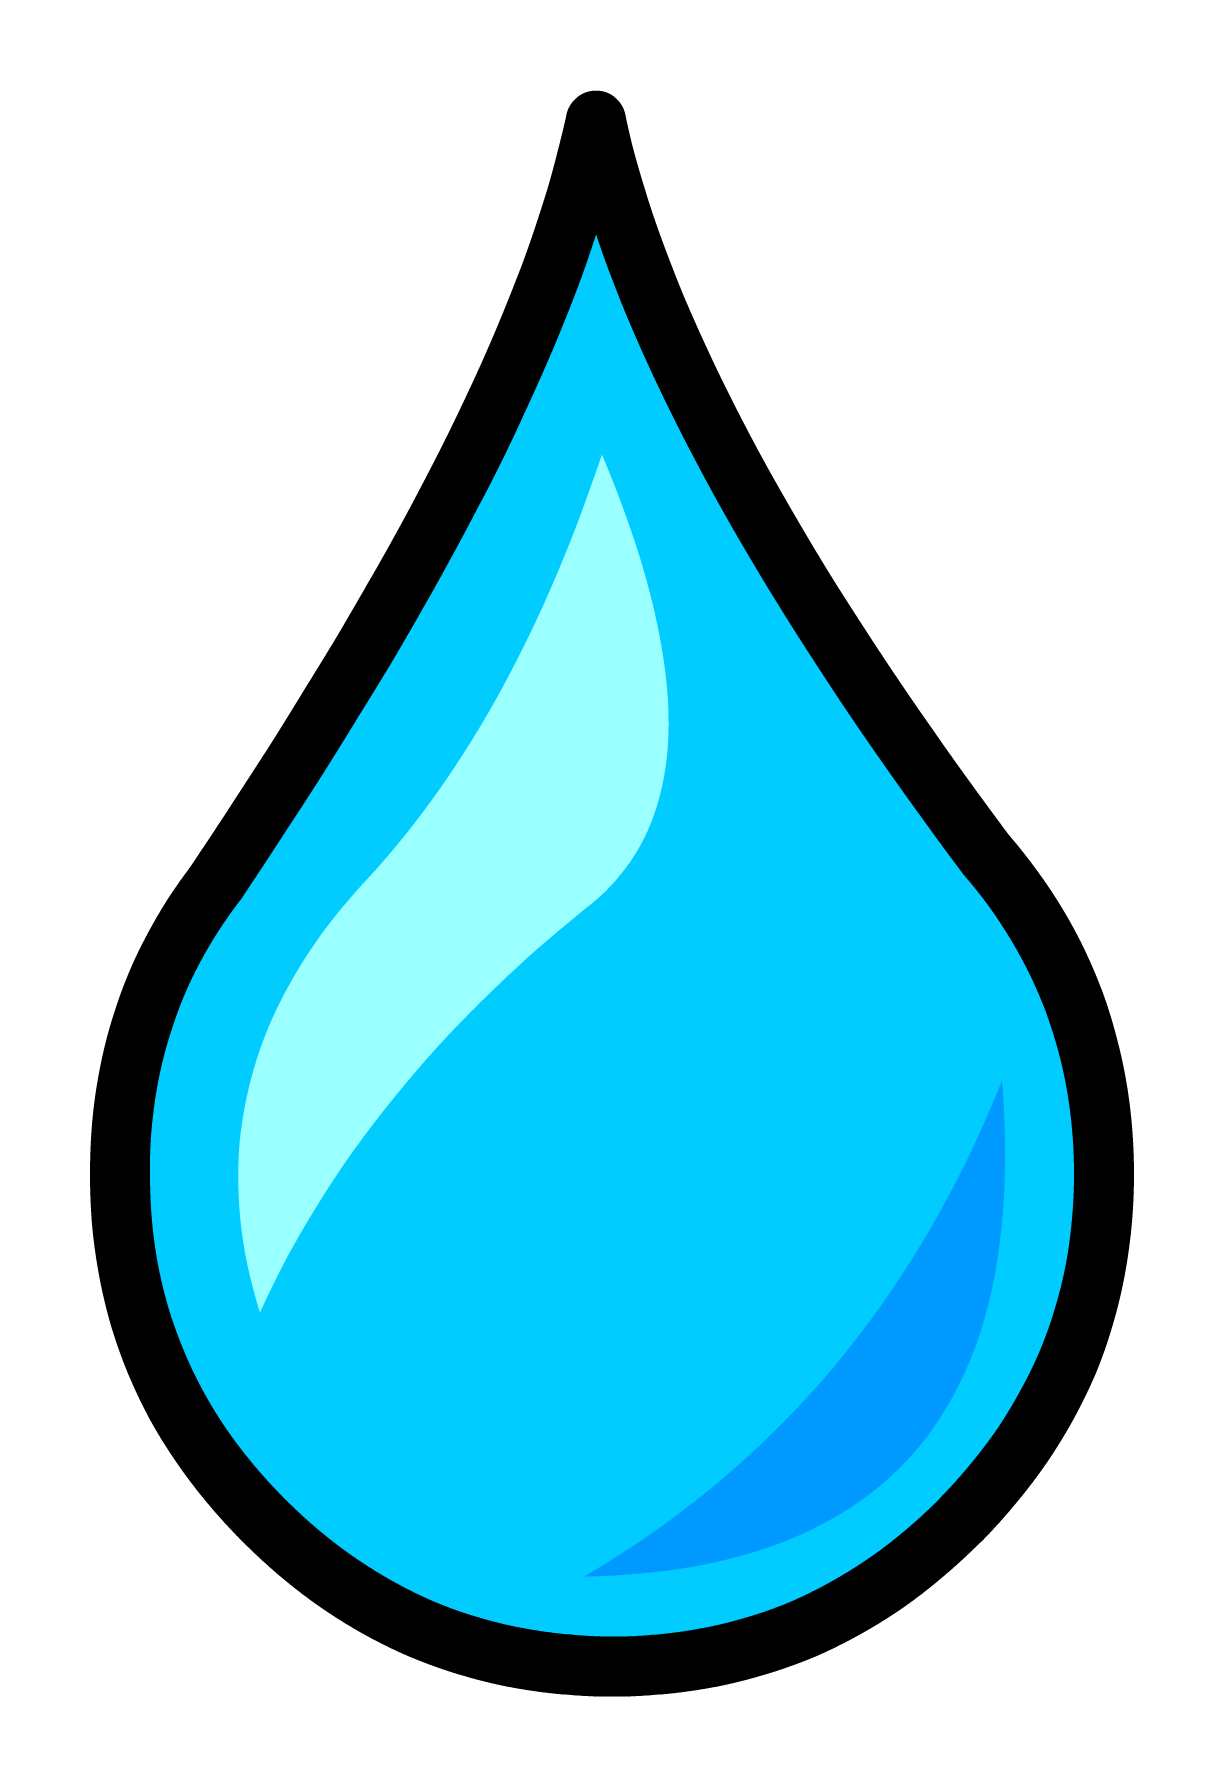 Image - Water Droplet Pin.PNG | Club Penguin Wiki | FANDOM powered ...